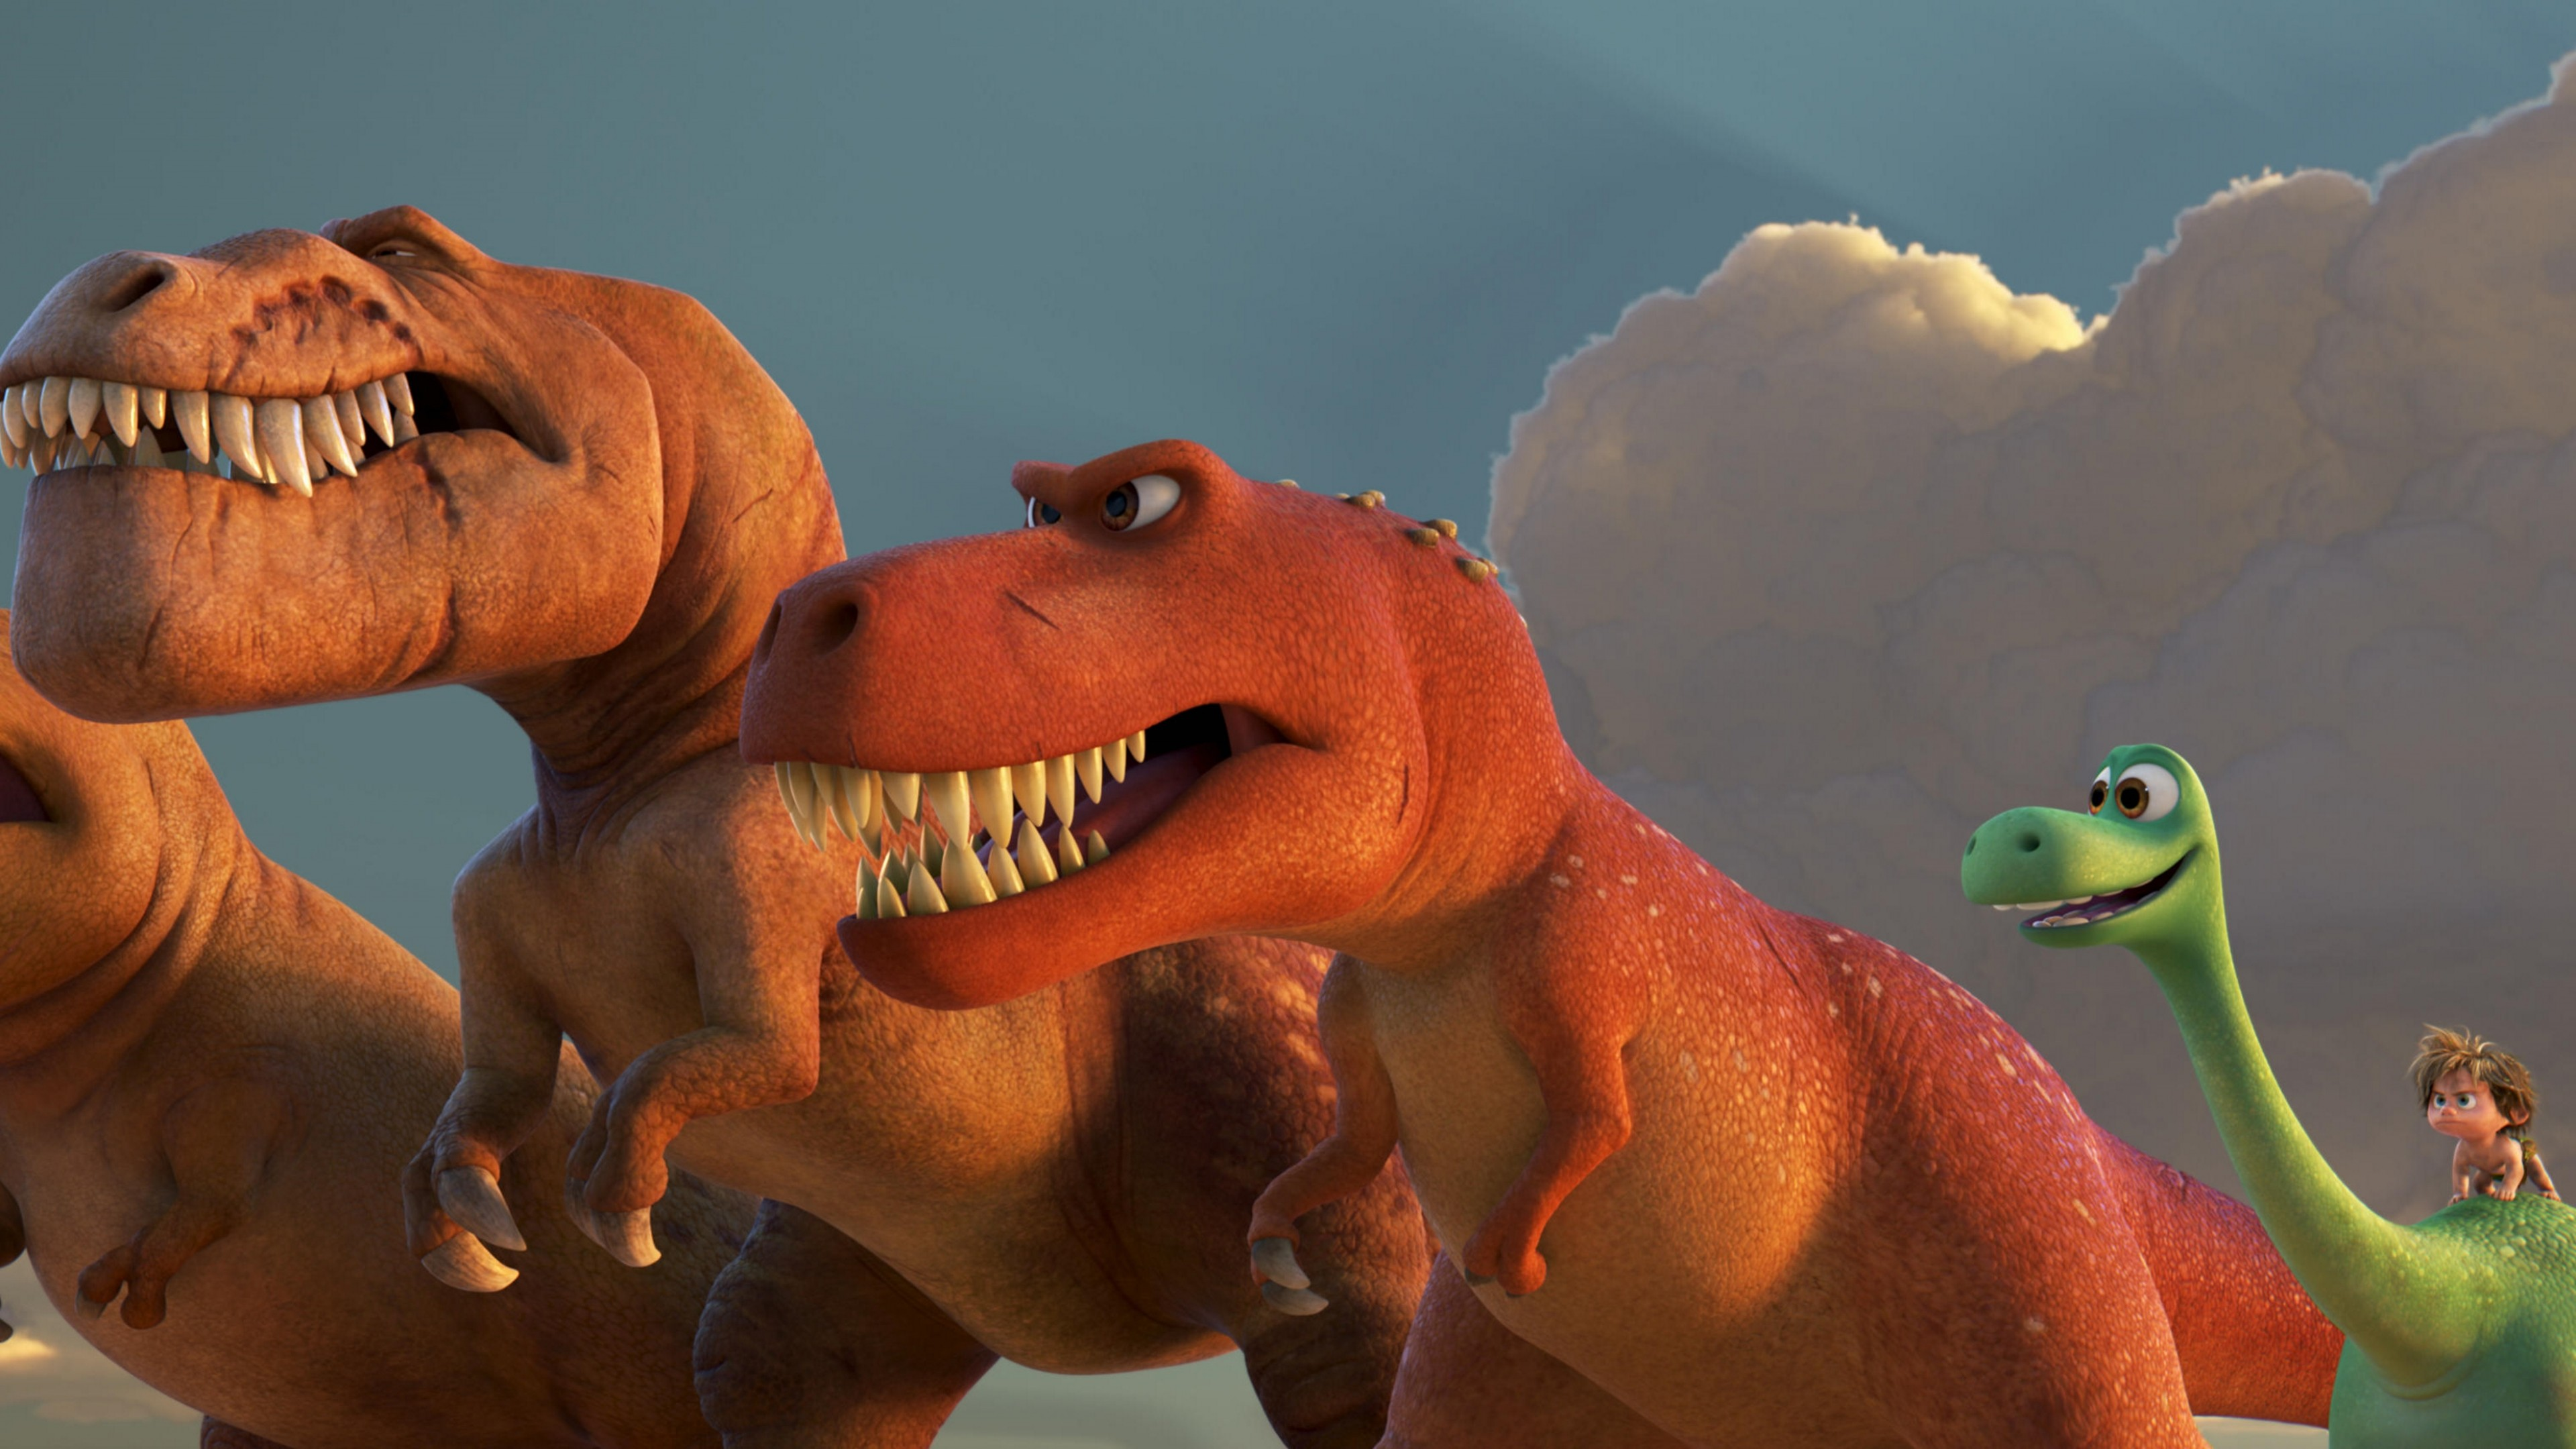 Wallpaper The Good Dinosaur Dinosaurs Tyrannosaurus